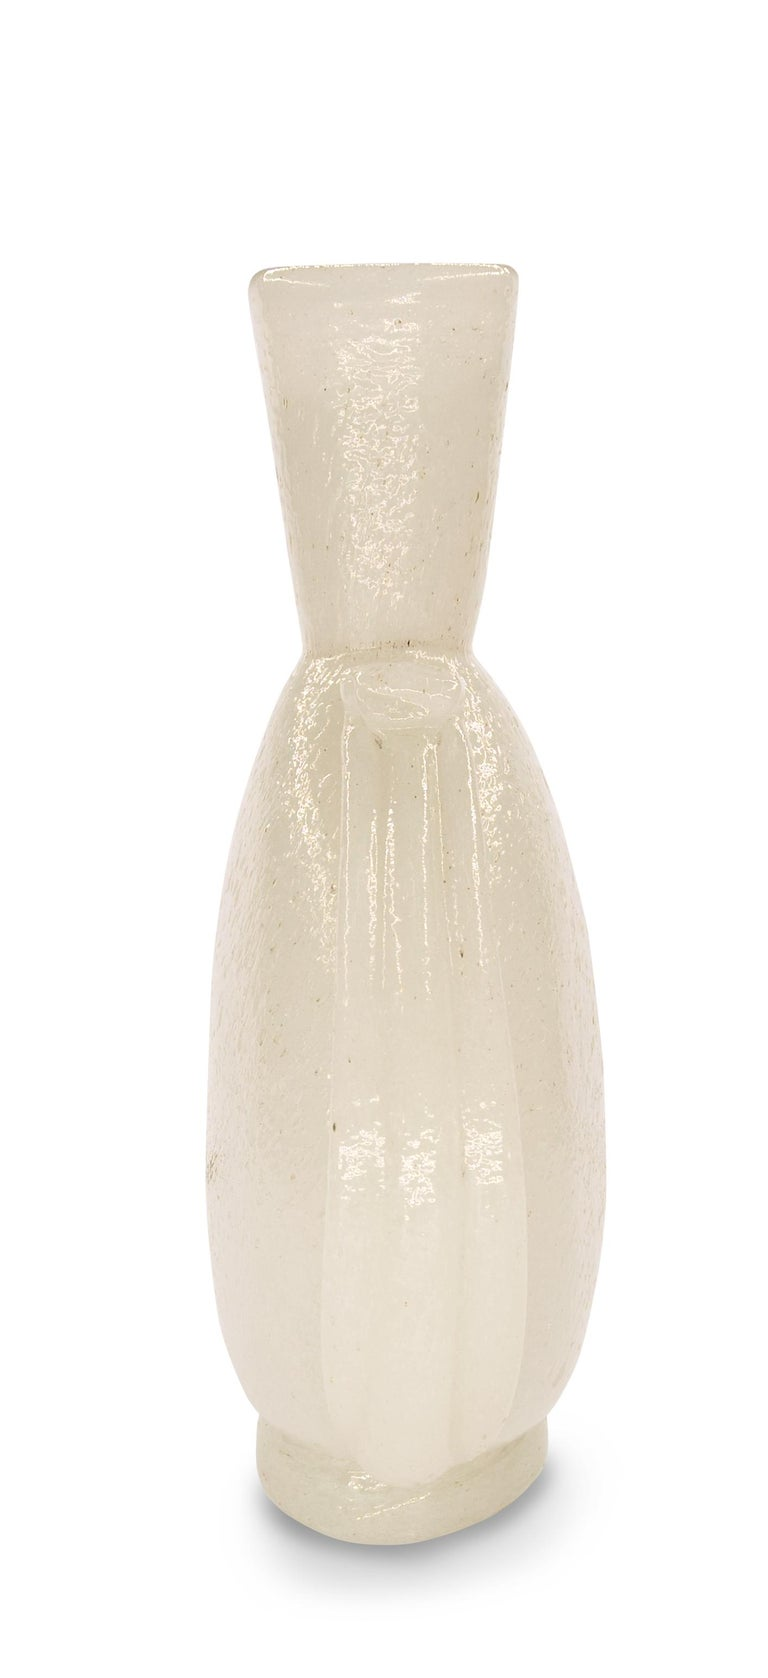 Vintage Murano Pulegoso Glass Vase with Applications, 1930s In Excellent Condition In Roma, IT